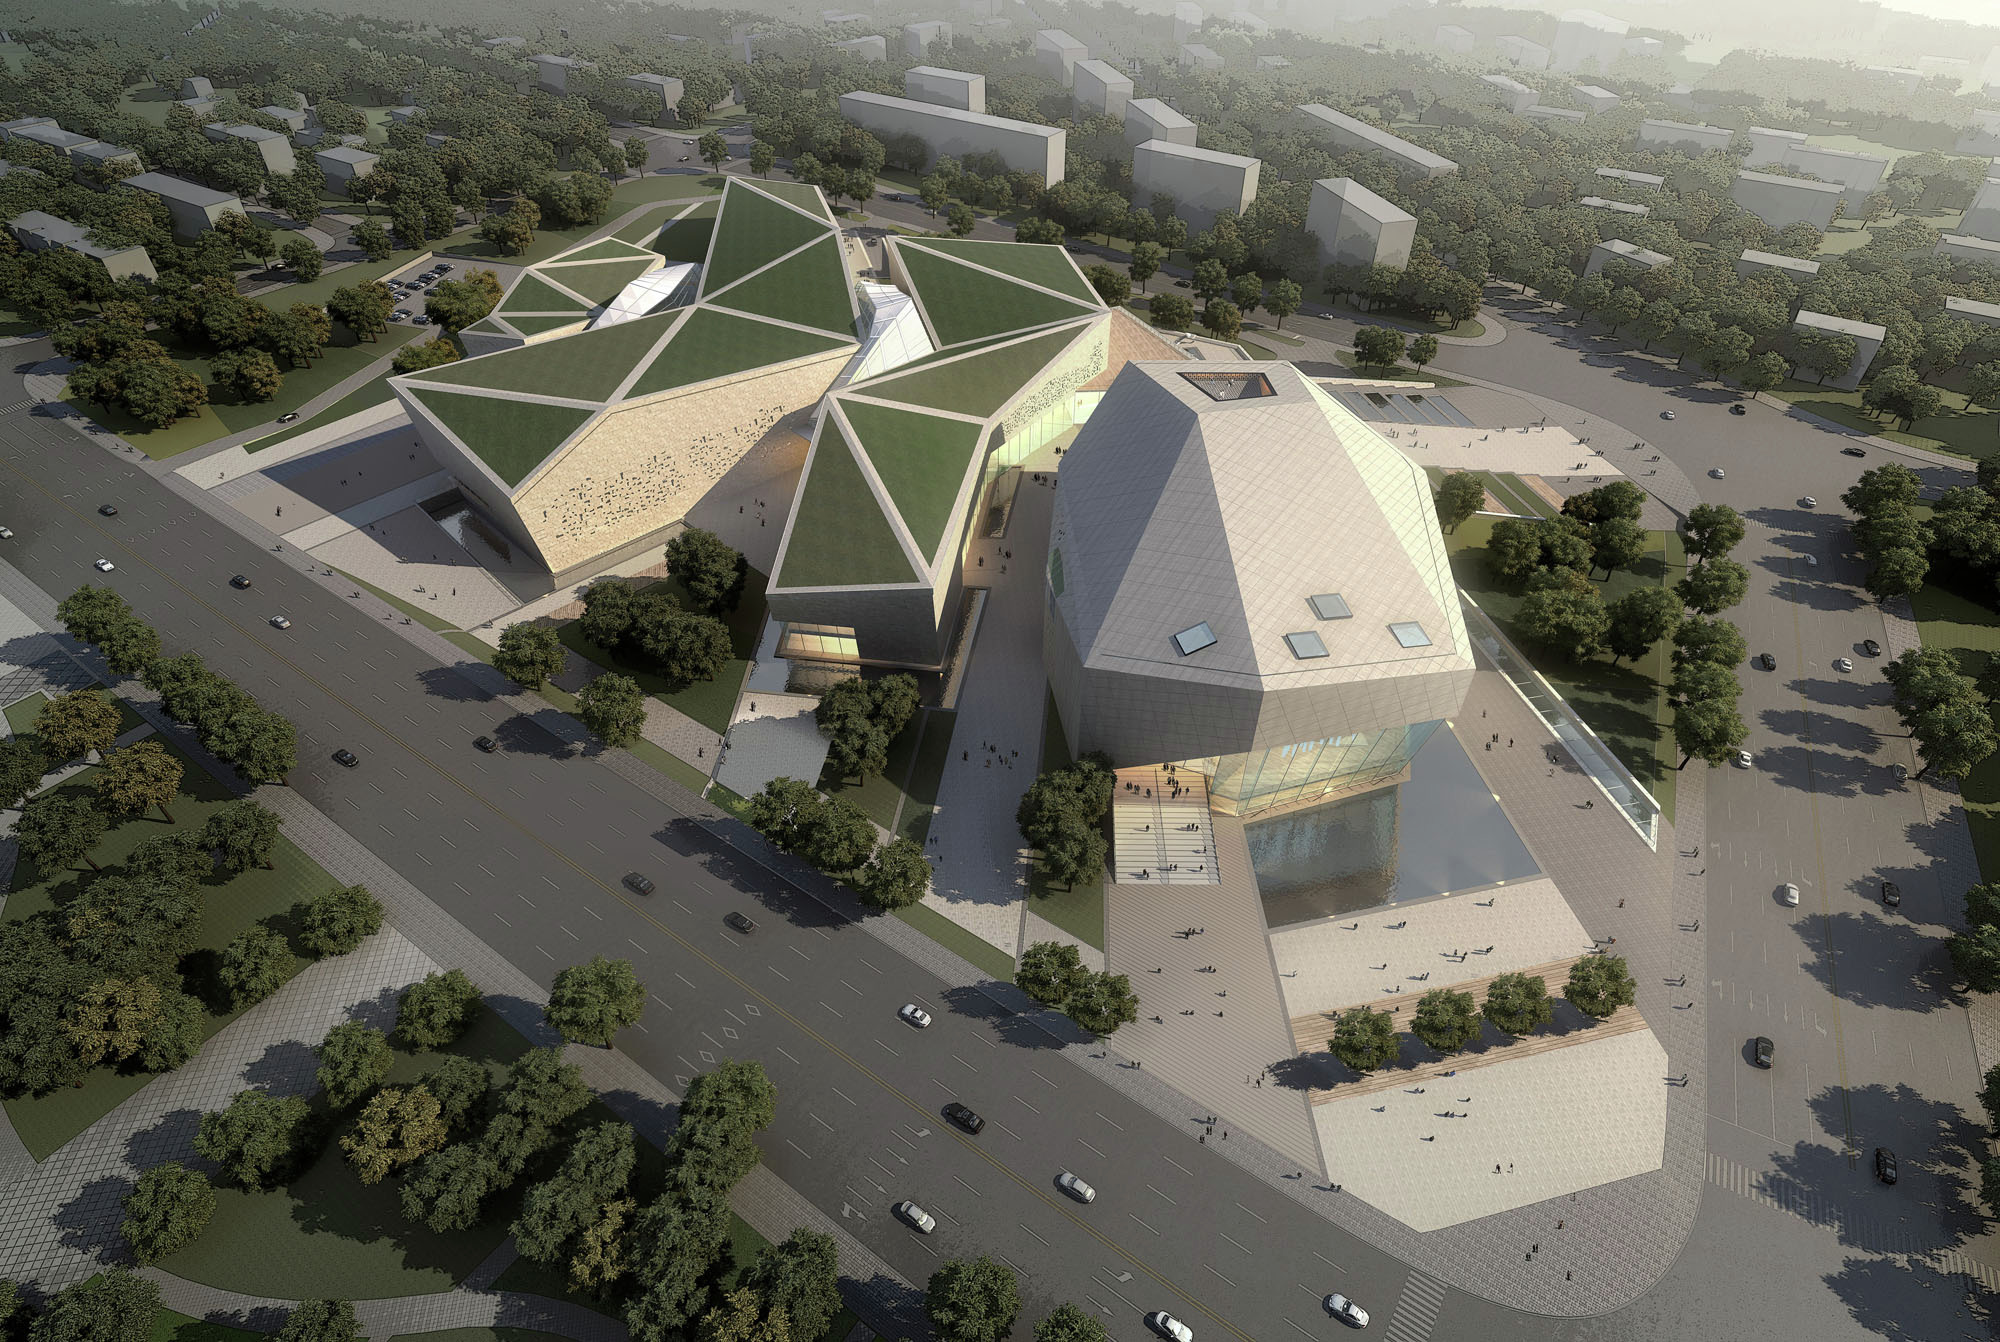 Gallery Of Huaihua Theater And Exhibition Center Proposal